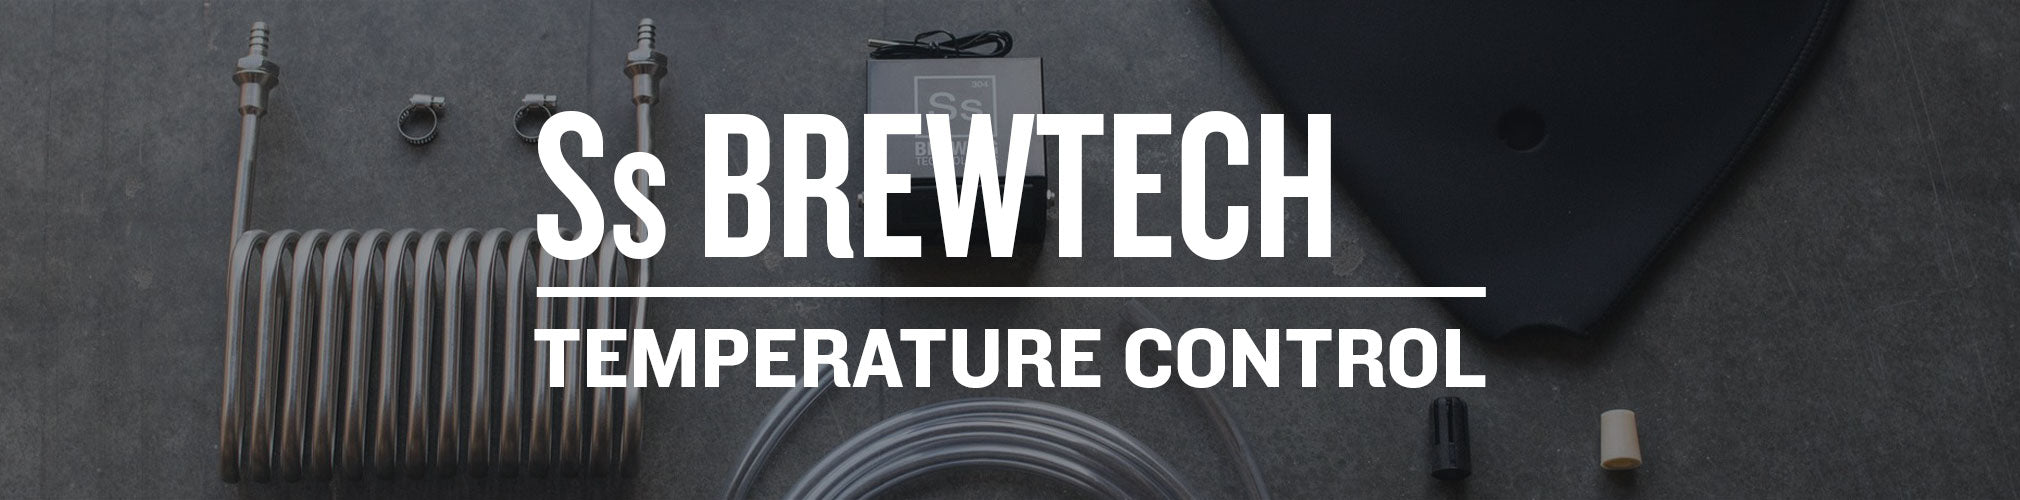 Ss Brewtech Temperature Control